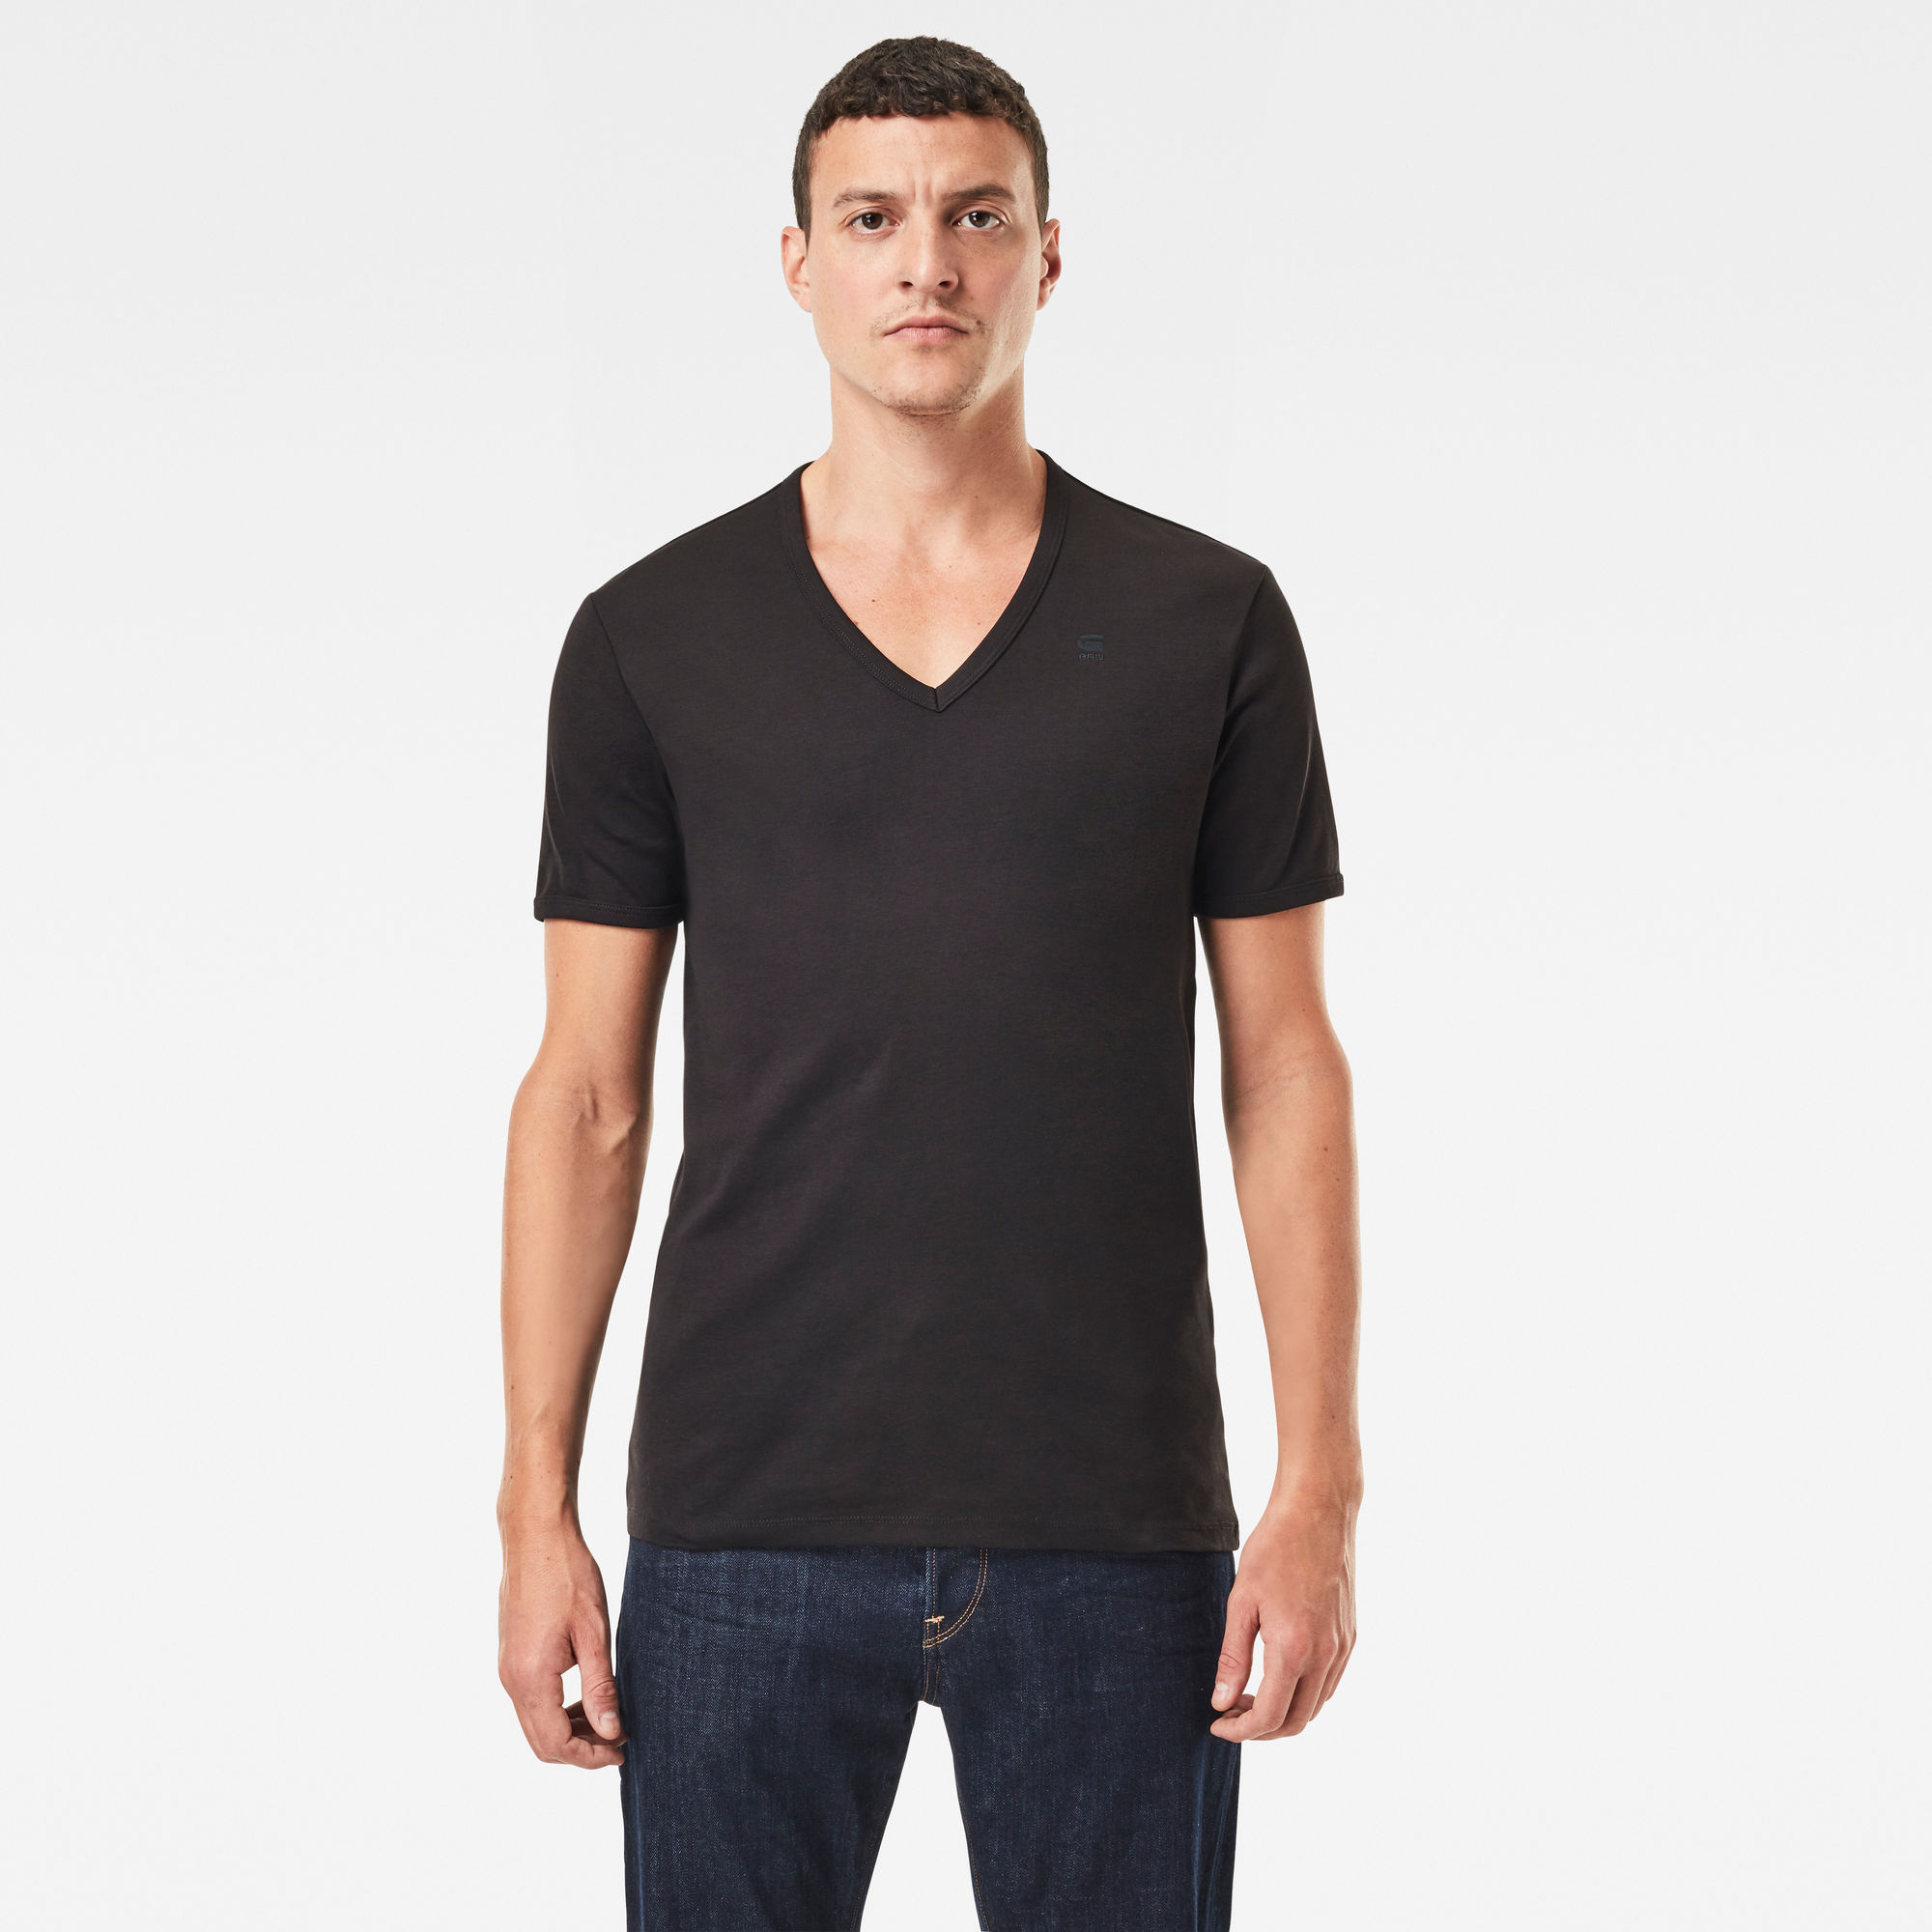 G-Star RAW Hombre Basic V-Neck T-Shirt 2-Pack Negro